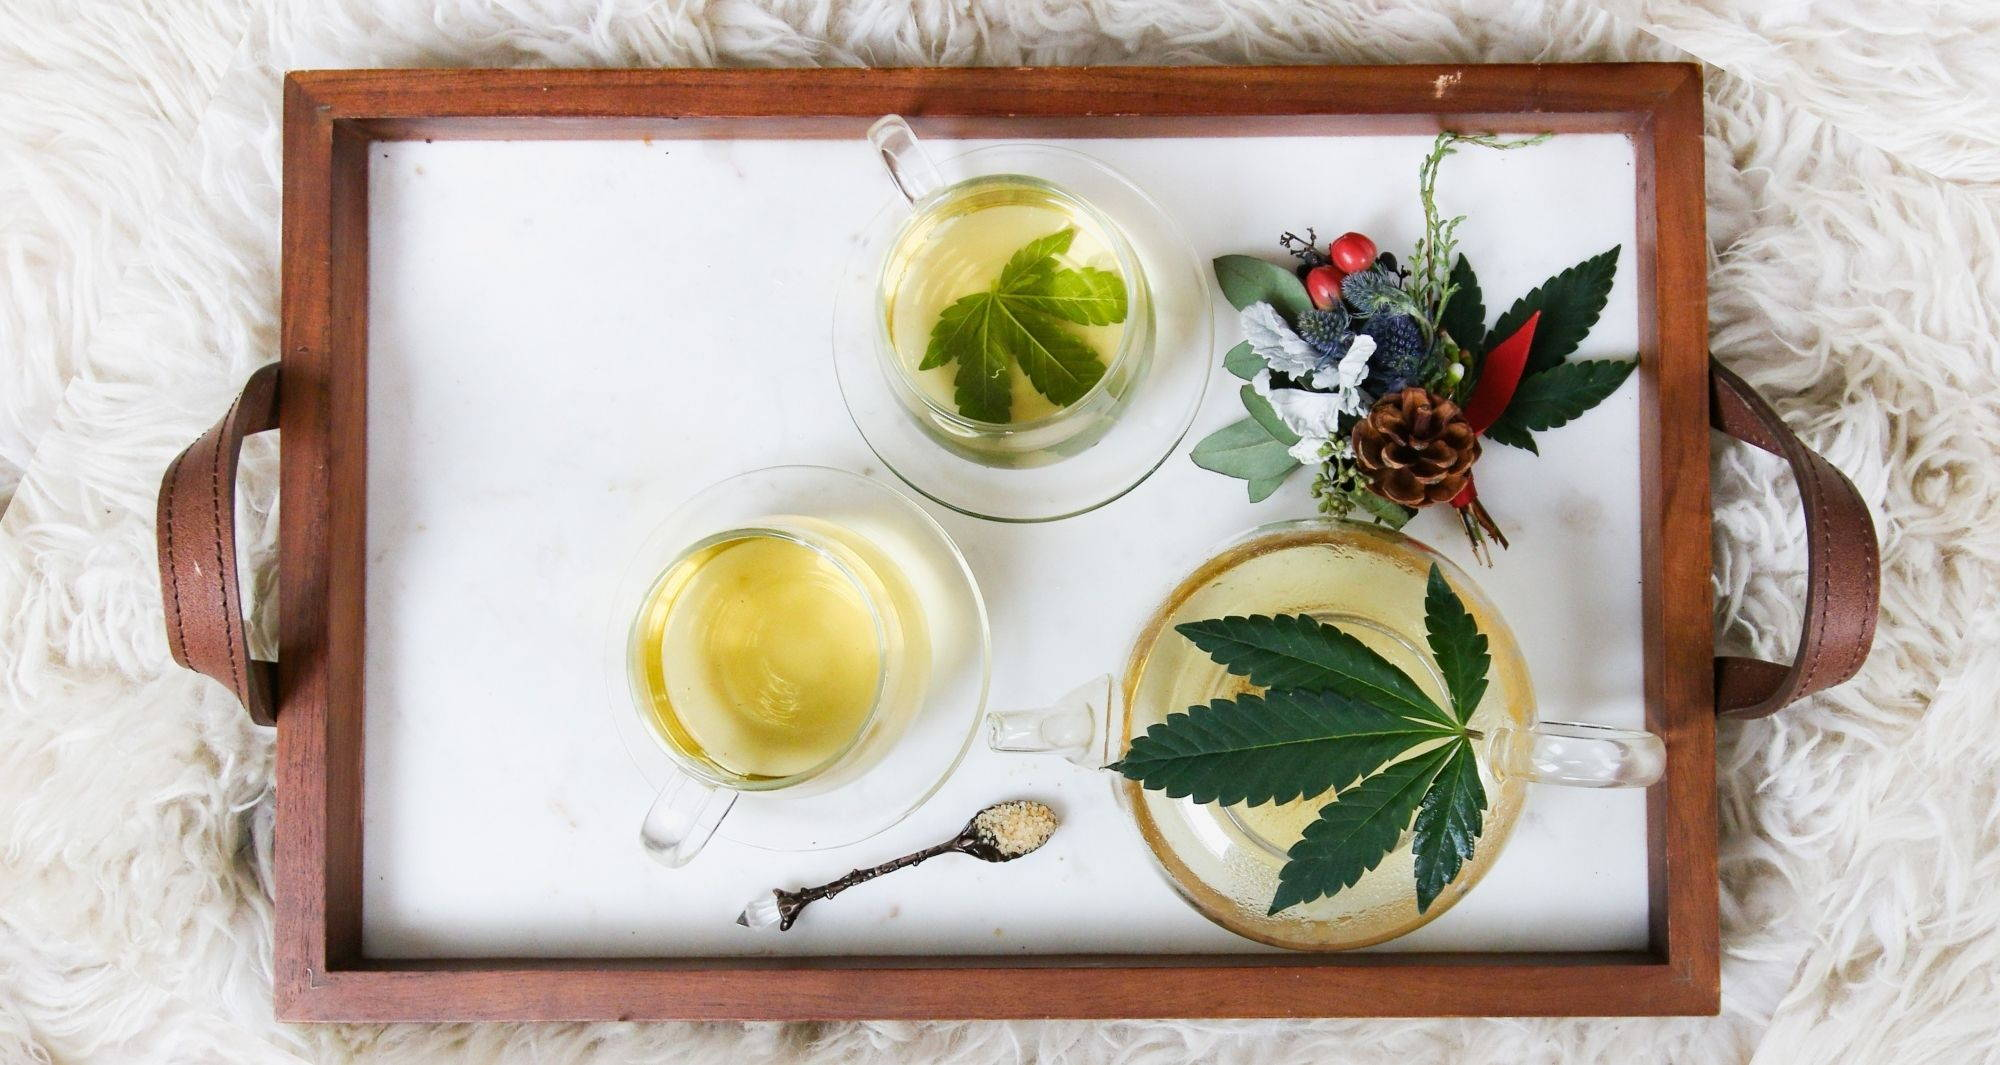 A white and brown tray filled with cups of hemp tea sits on a fluffy white surface.